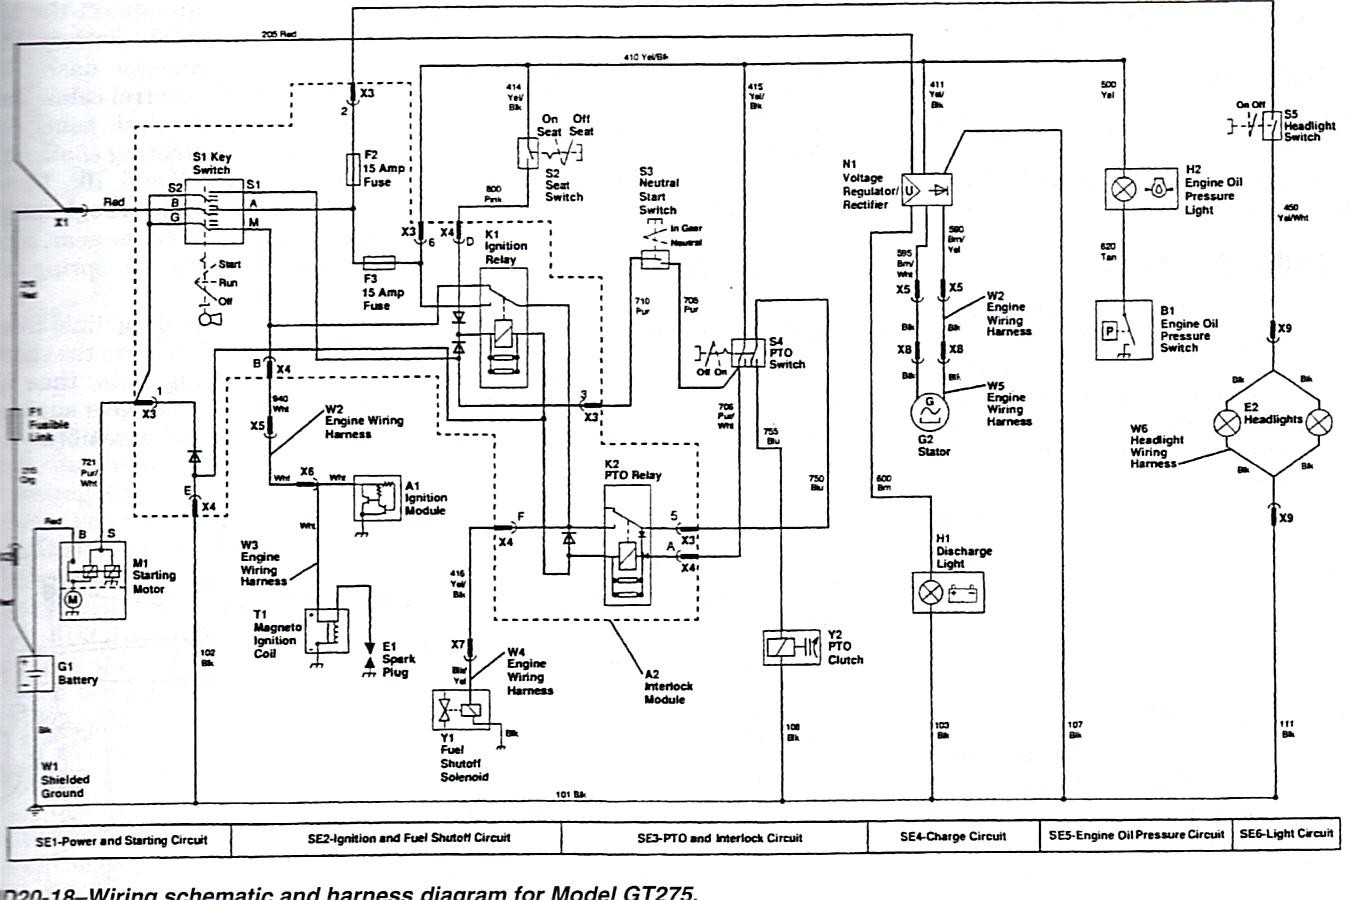 hight resolution of gt275 wiring diagram wiring diagram data schema john deere gt275 voltage regulator wiring diagram gt275 wiring